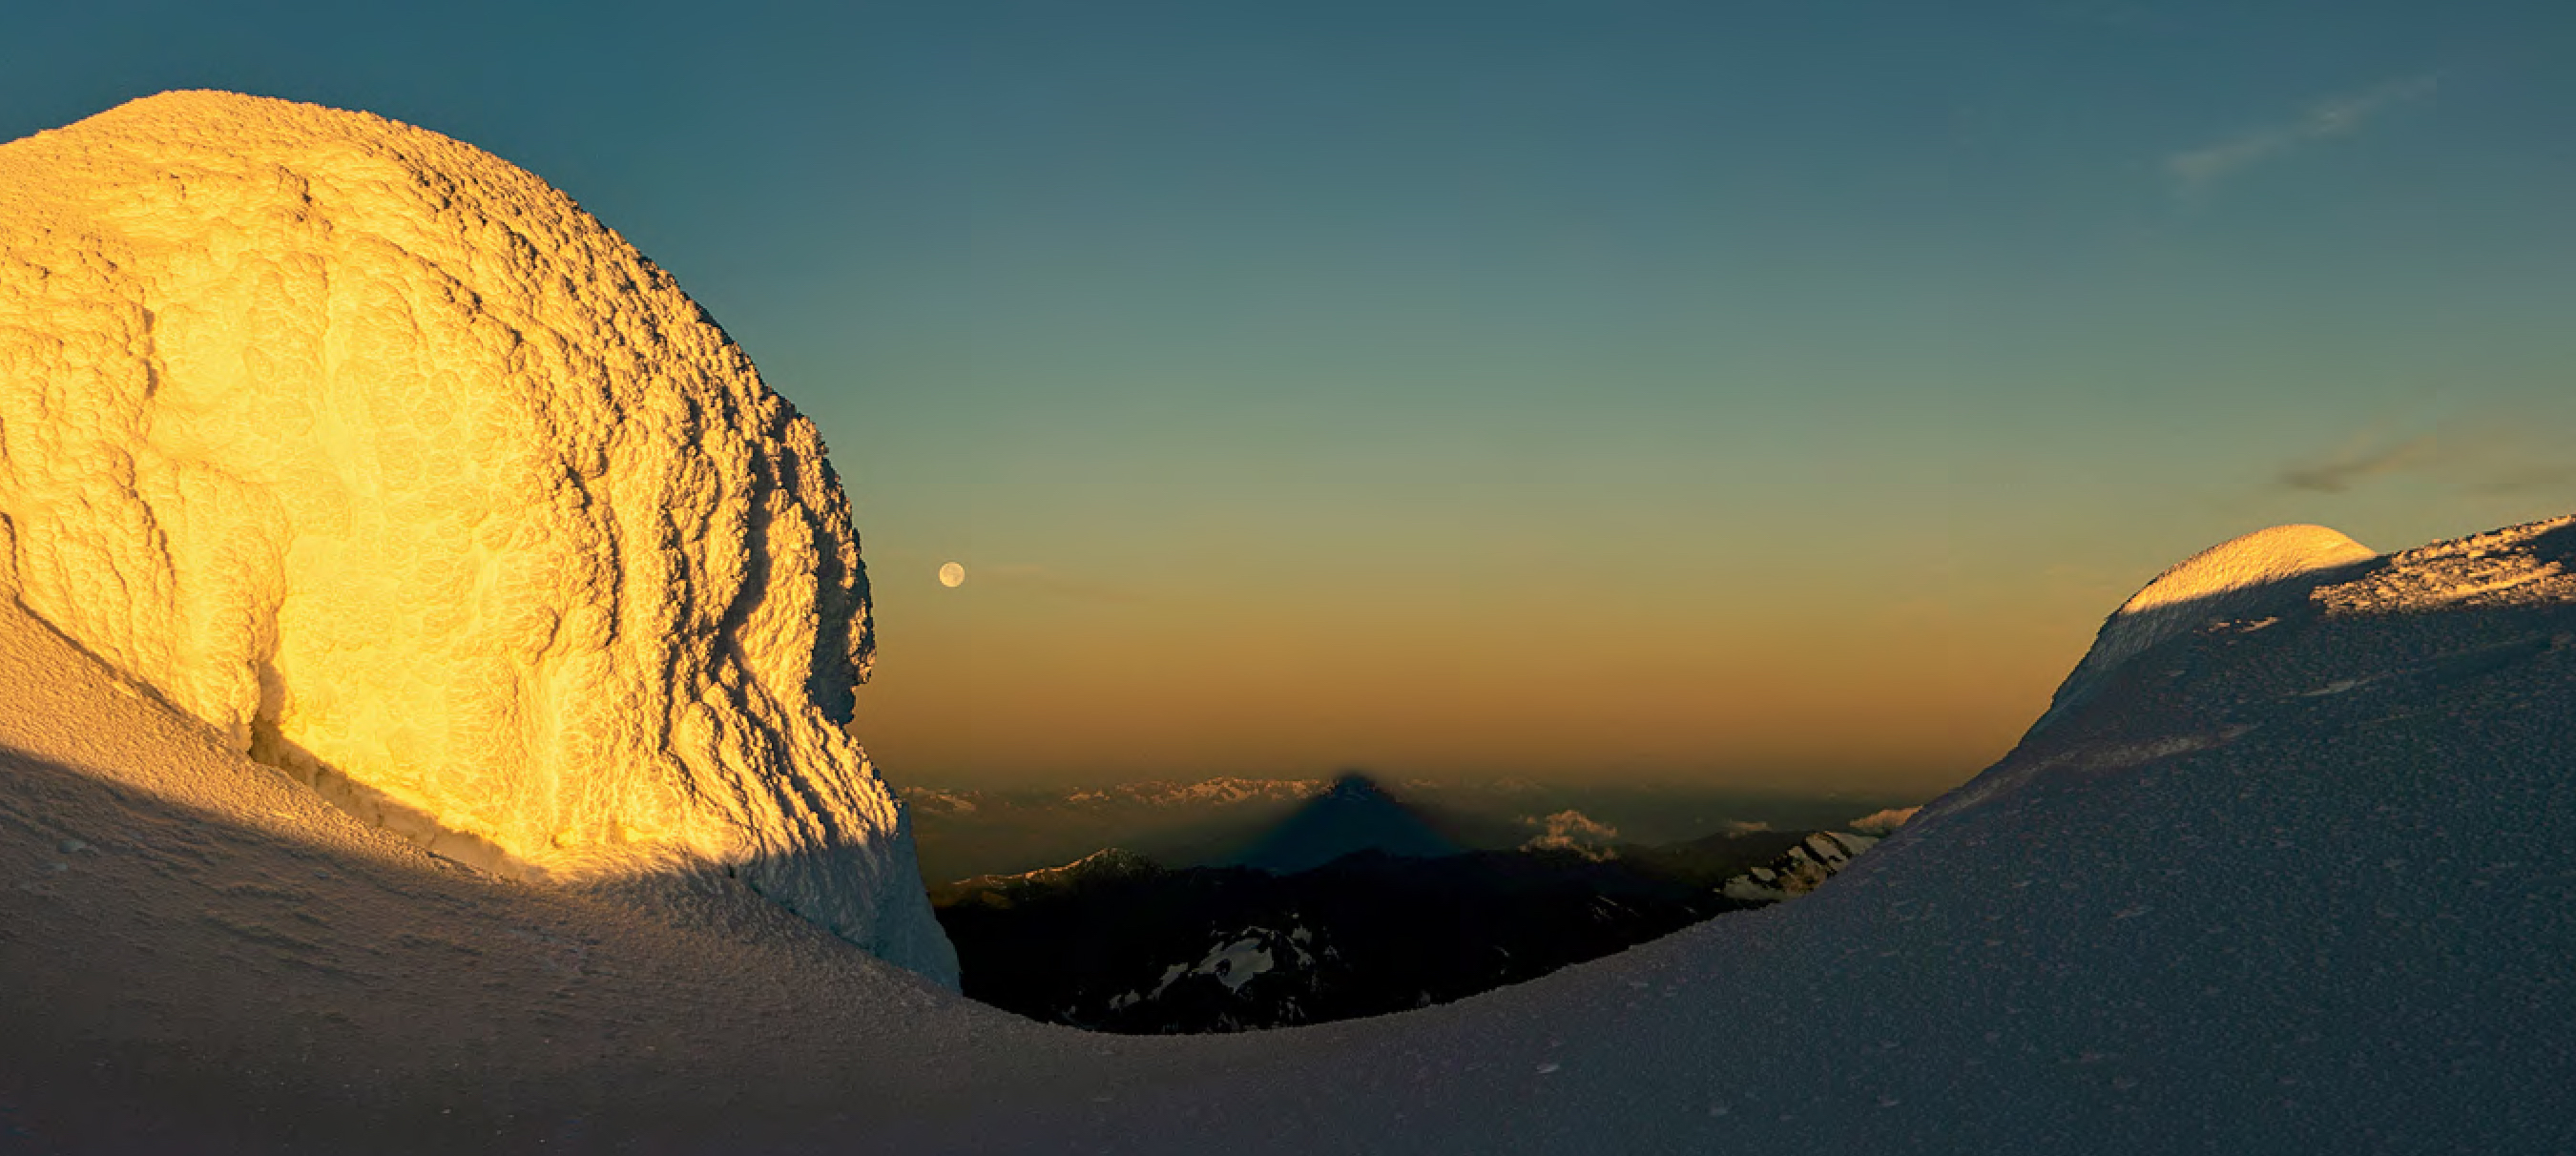 Looking west to the mountain's shadow cast by the rising sun behind. [Photo] Uisdean Hawthorn